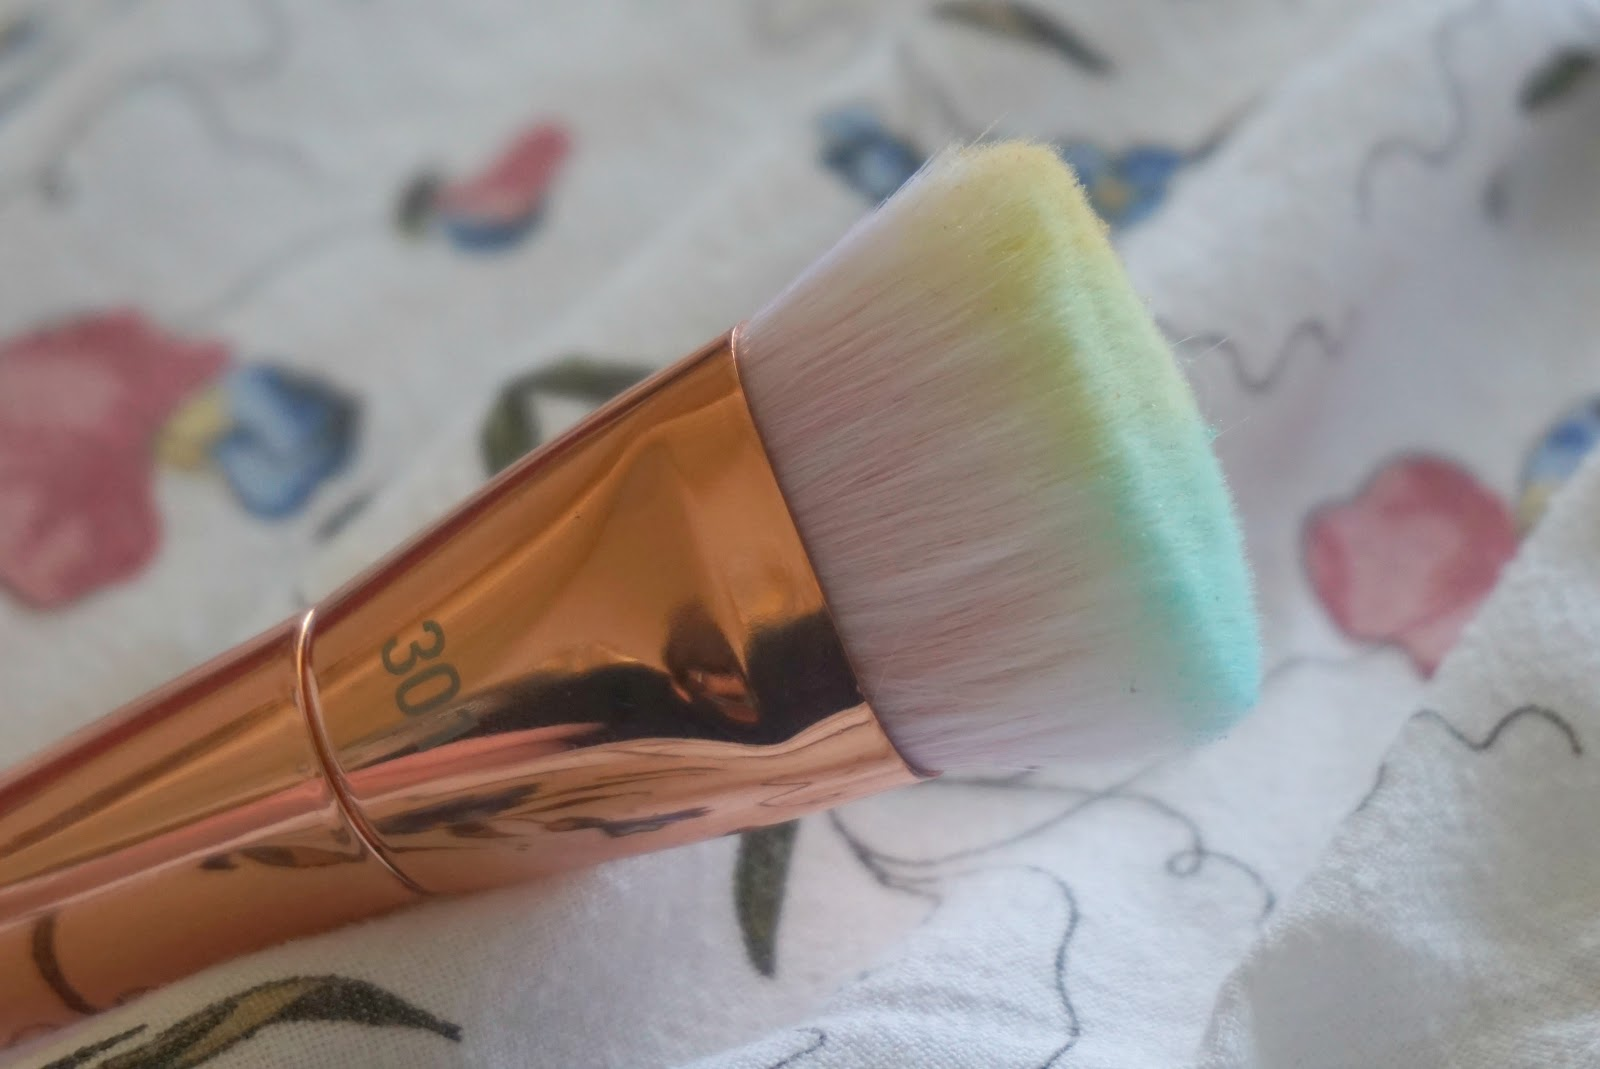 Lottie London Mermaid Glow Rainbow Highlighter Review Swatches